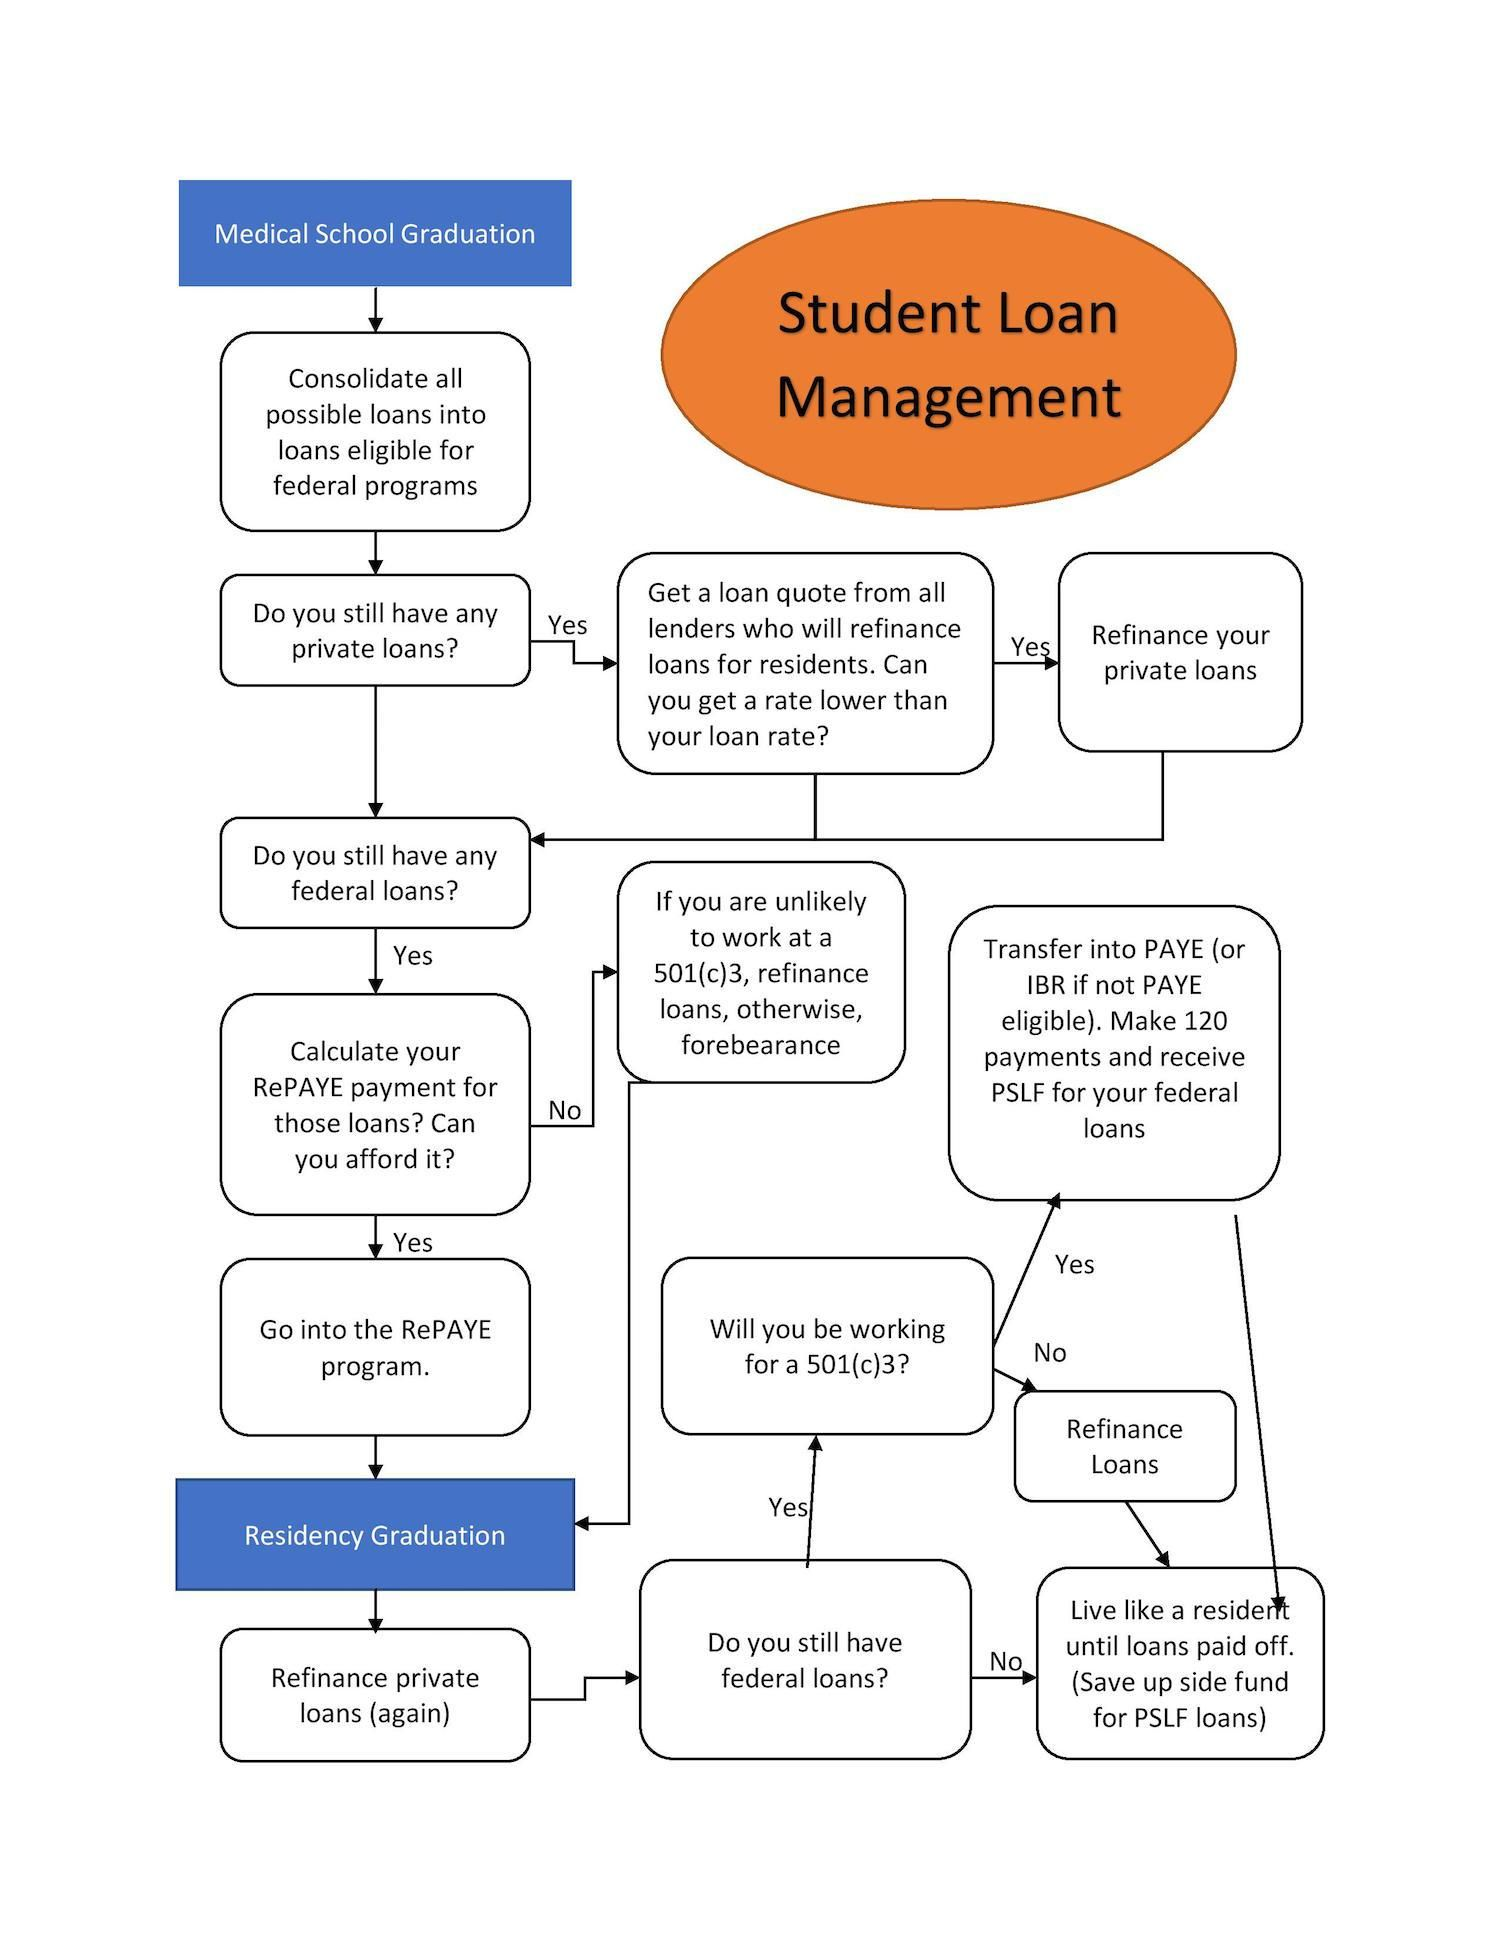 51 Plan Maison Interg N Ration Student Loans Refinance Student Loans Student